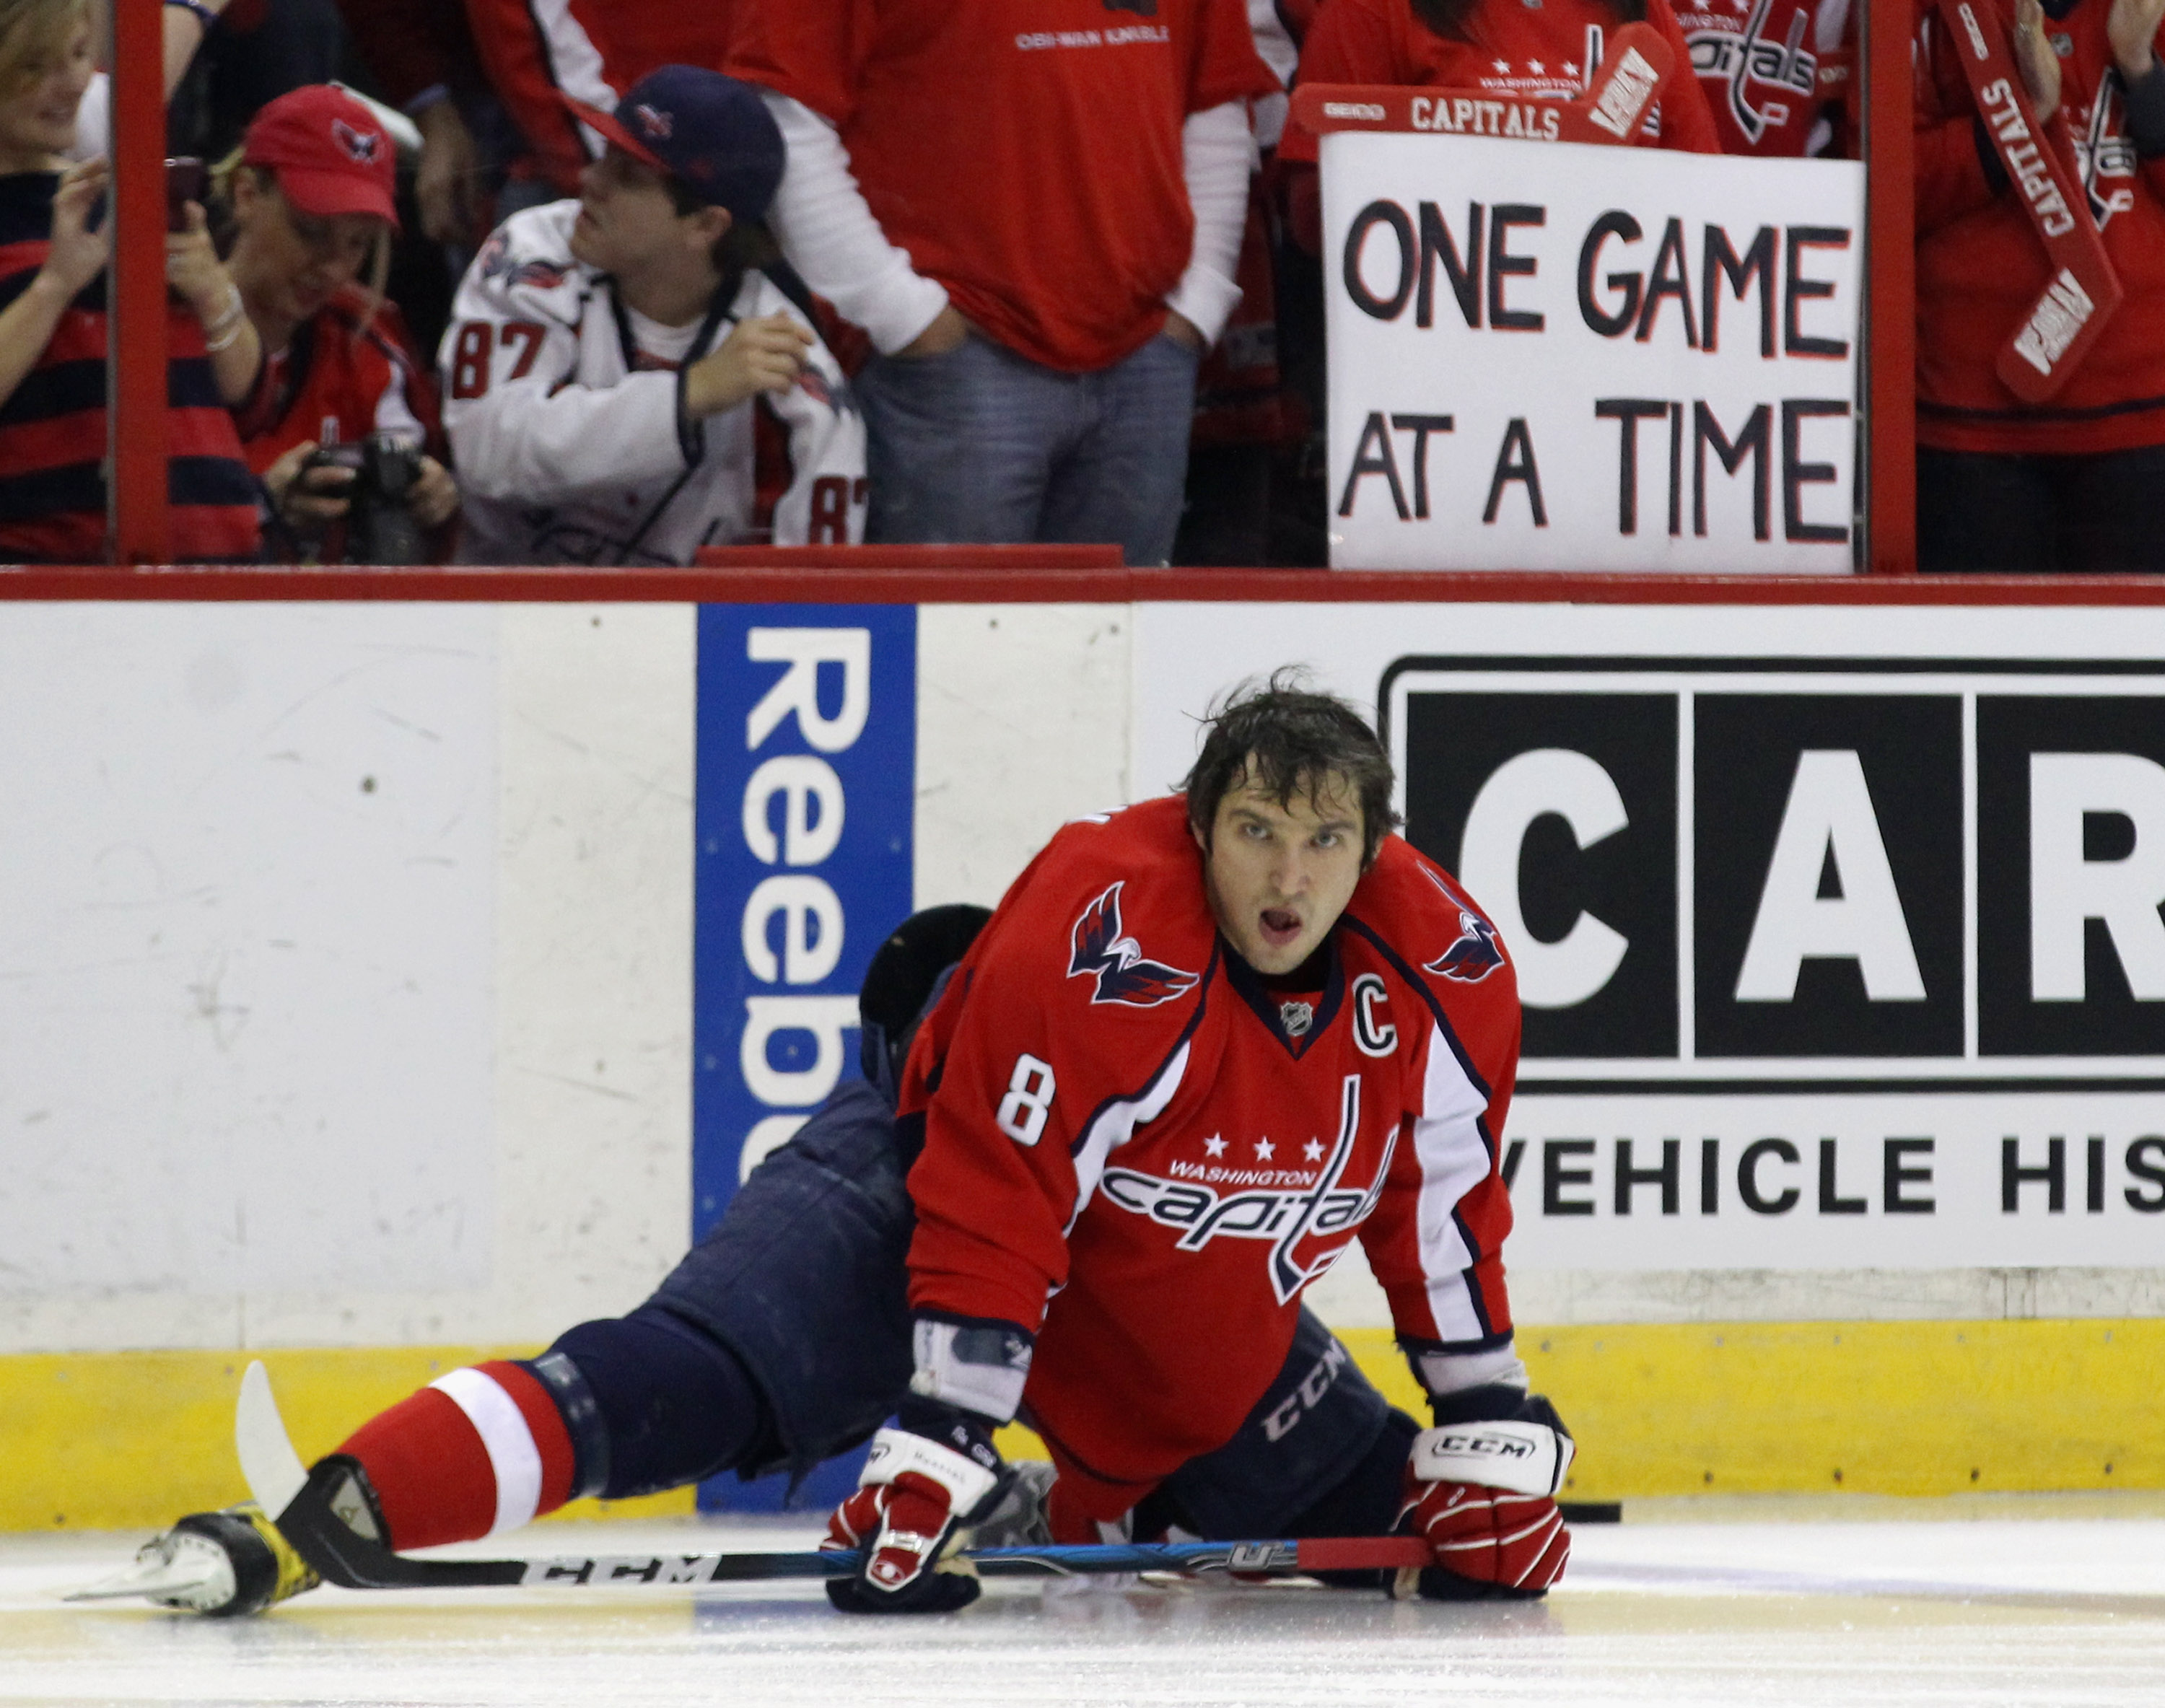 WASHINGTON, DC - APRIL 15: Alex Ovechkin #8 of the Washington Capitals warms up prior to his game against the New York Rangers in Game Two of the Eastern Conference Quarterfinals during the 2011 NHL Stanley Cup Playoffs at Verizon Center on April 15, 2011